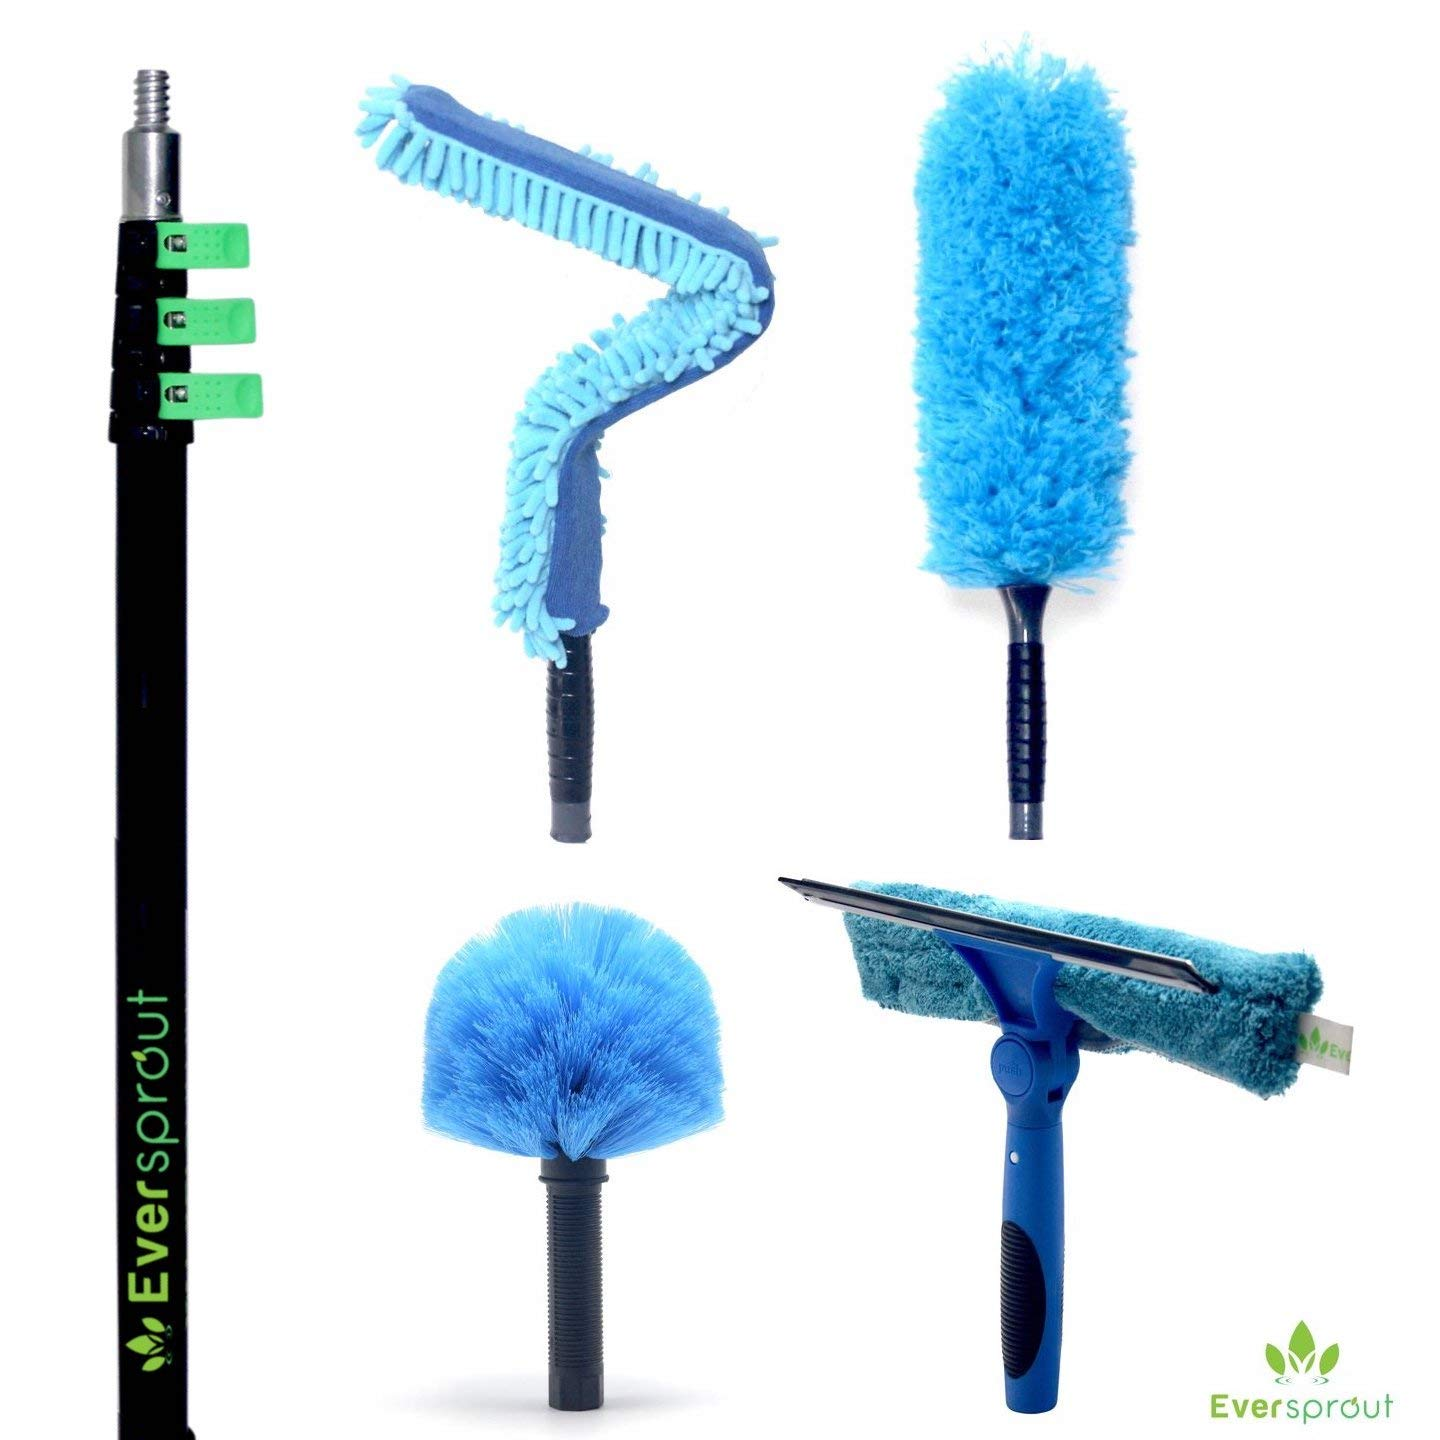 EVERSPROUT 4-Pack Duster Squeegee Kit with Extension-Pole (30+ Foot Reach) | Swivel Squeegee, Hand-Packaged Cobweb Duster, Microfiber Feather Duster, Flexible Ceiling Fan Duster, 24 ft Telescopic Pole by EVERSPROUT (Image #2)